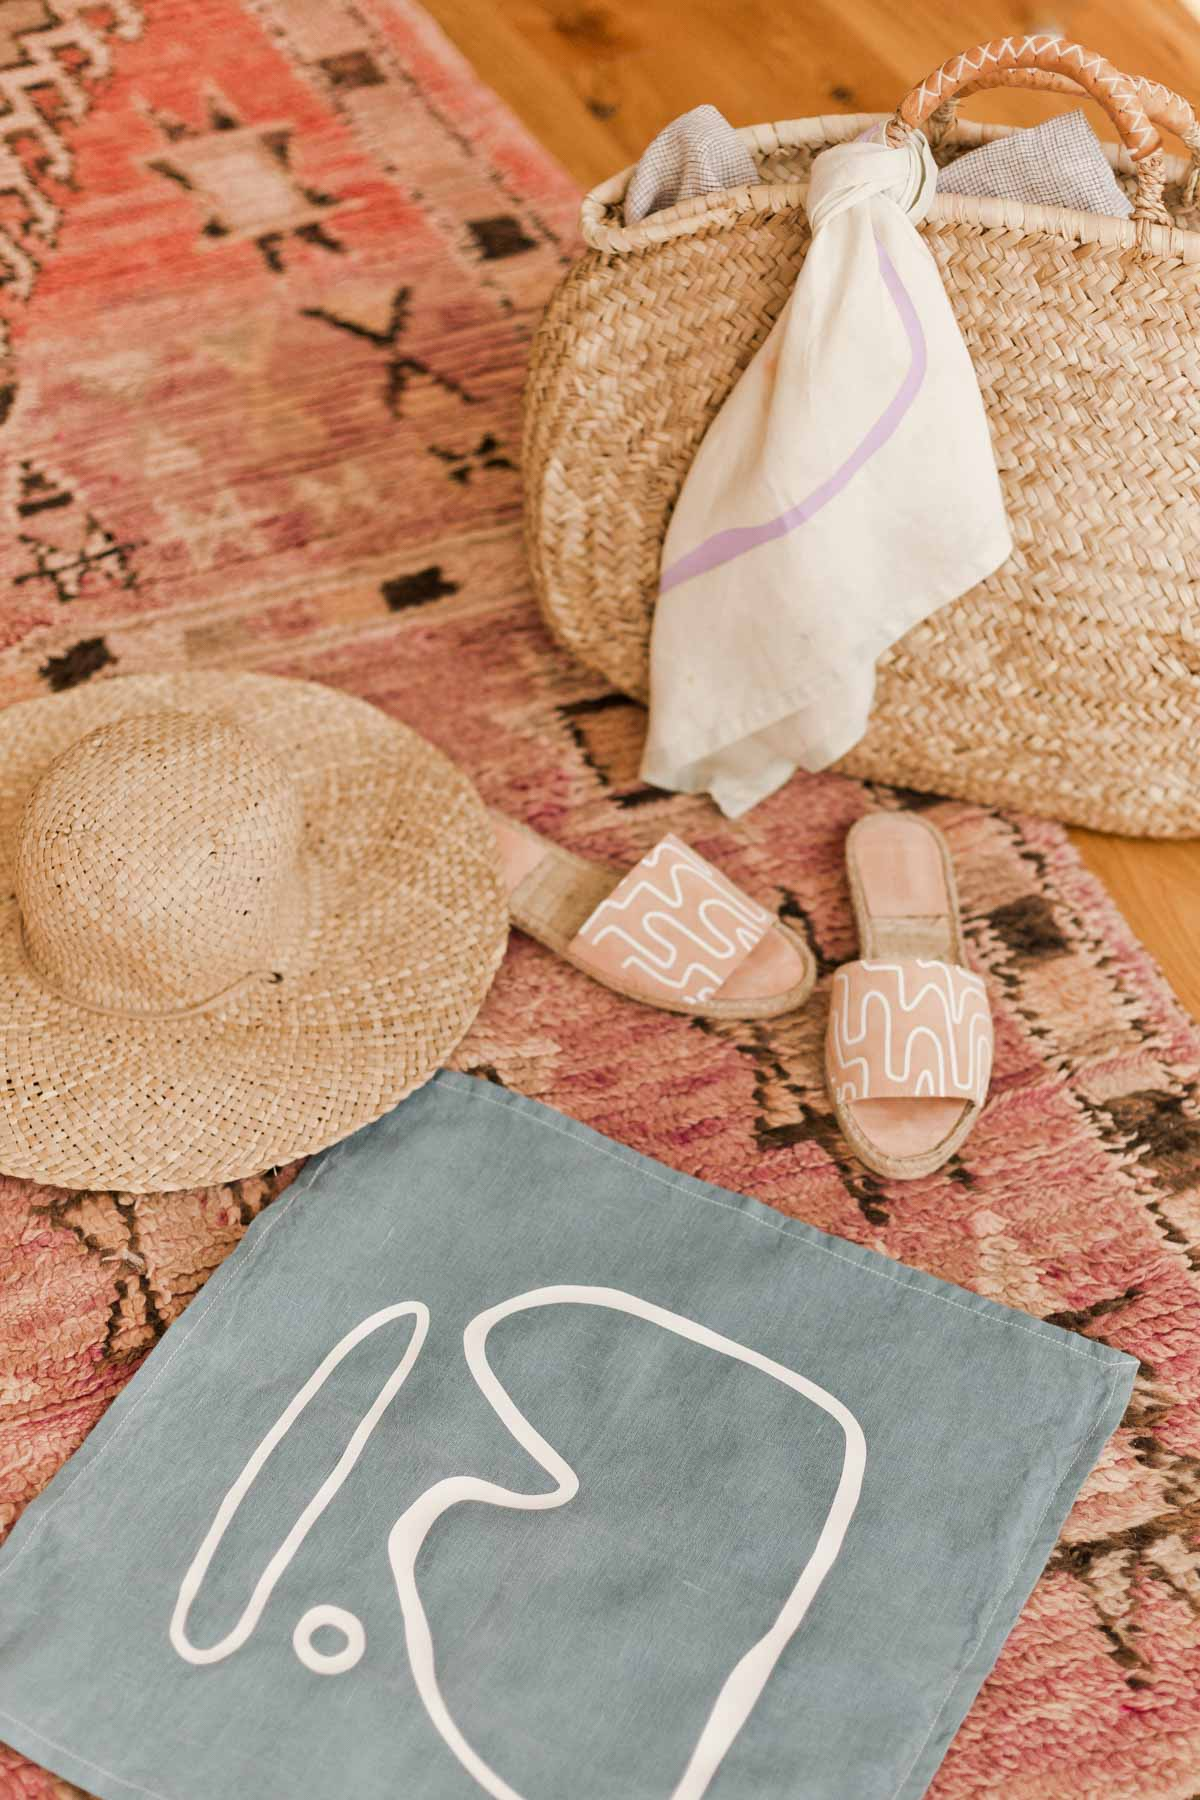 DIY Summer Accessories Idea // Give old sandals and summer bandanas new life with a quick (and easy) makeover. Click through for the tutorial AND free downloadable patterns to add unique prints to nearly anything you can think of. #diy #diysummer #summer #summeraccessories #sandals #bandana #abstractprint